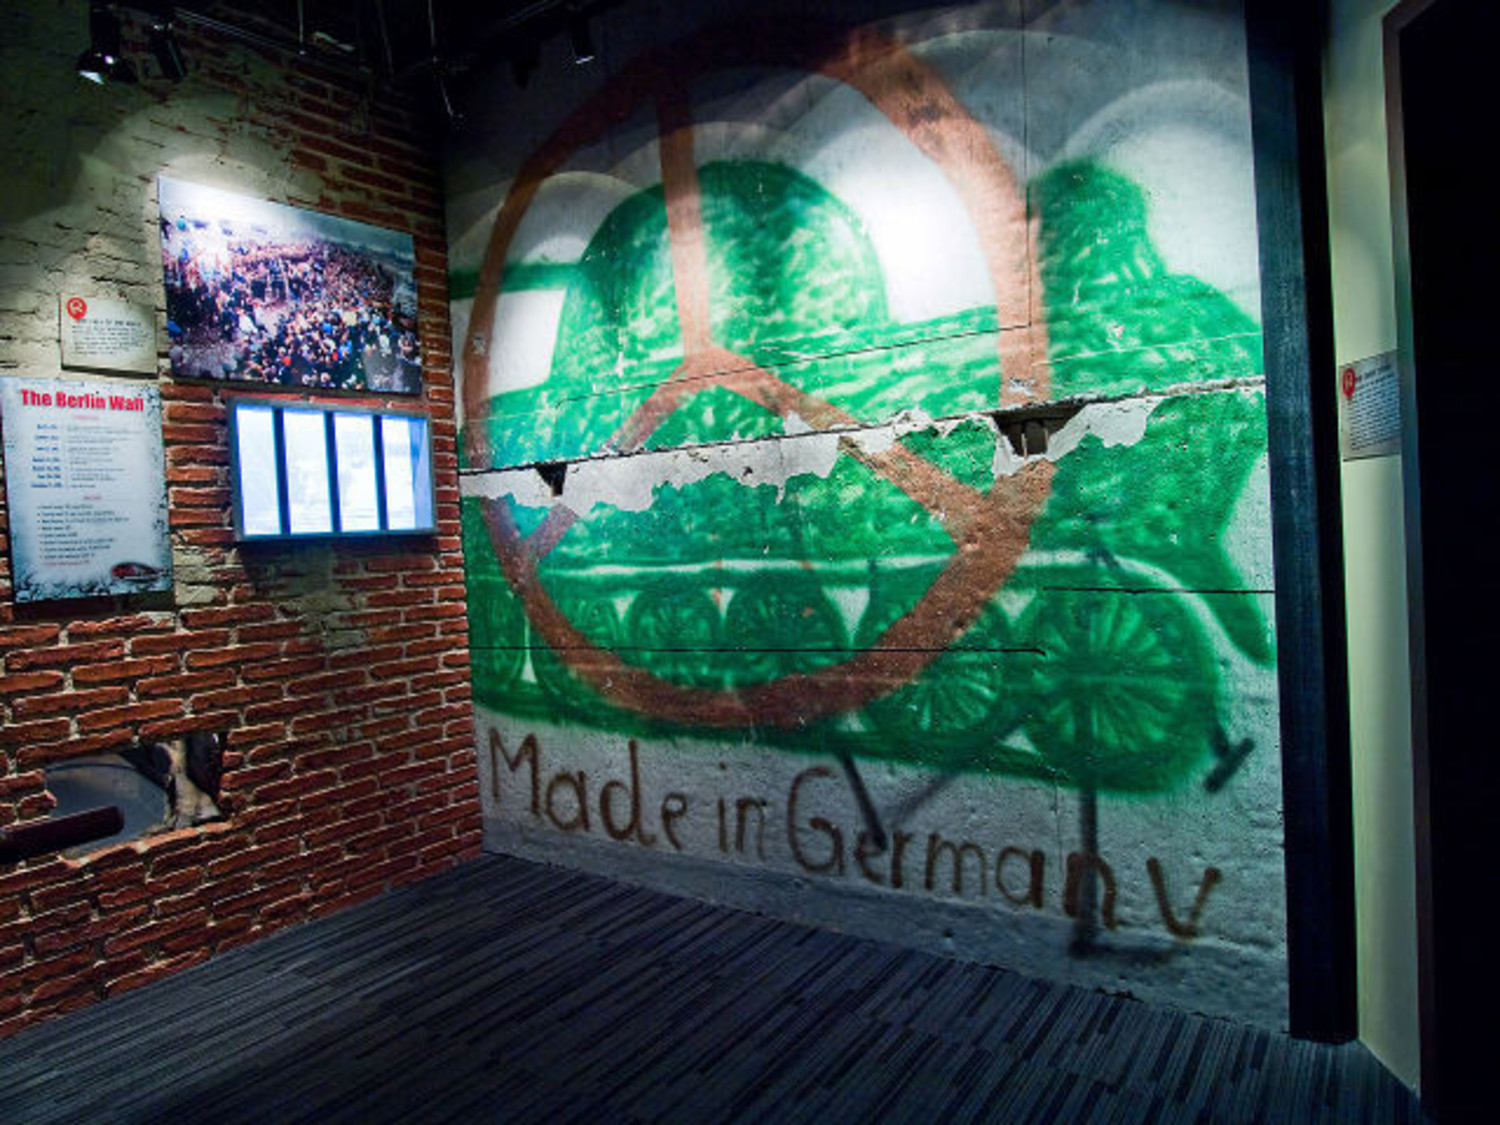 Ripley's Believe it or Not Berlin Wall